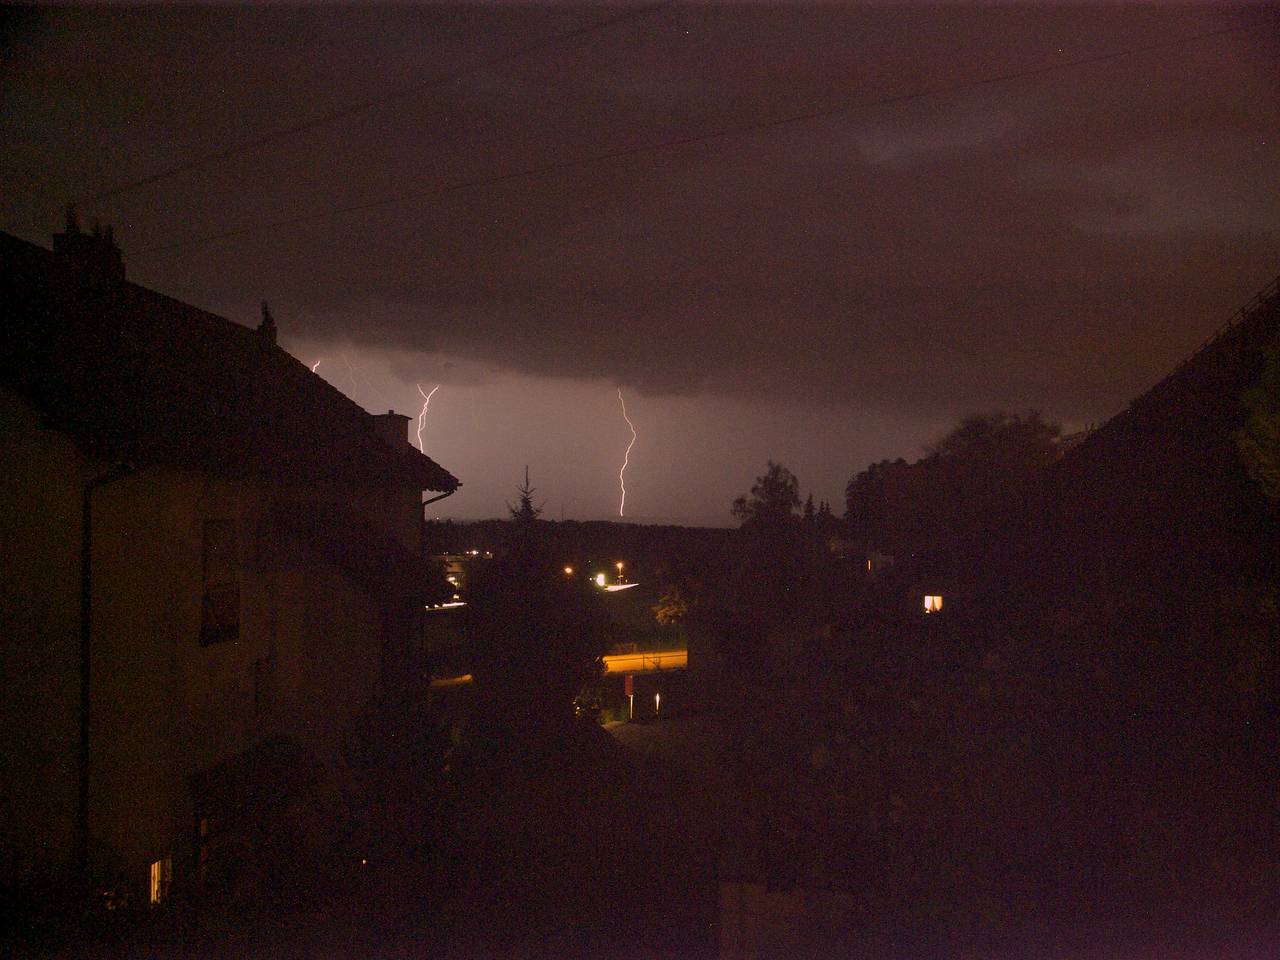 Week 29 who says lightning never strikes twice